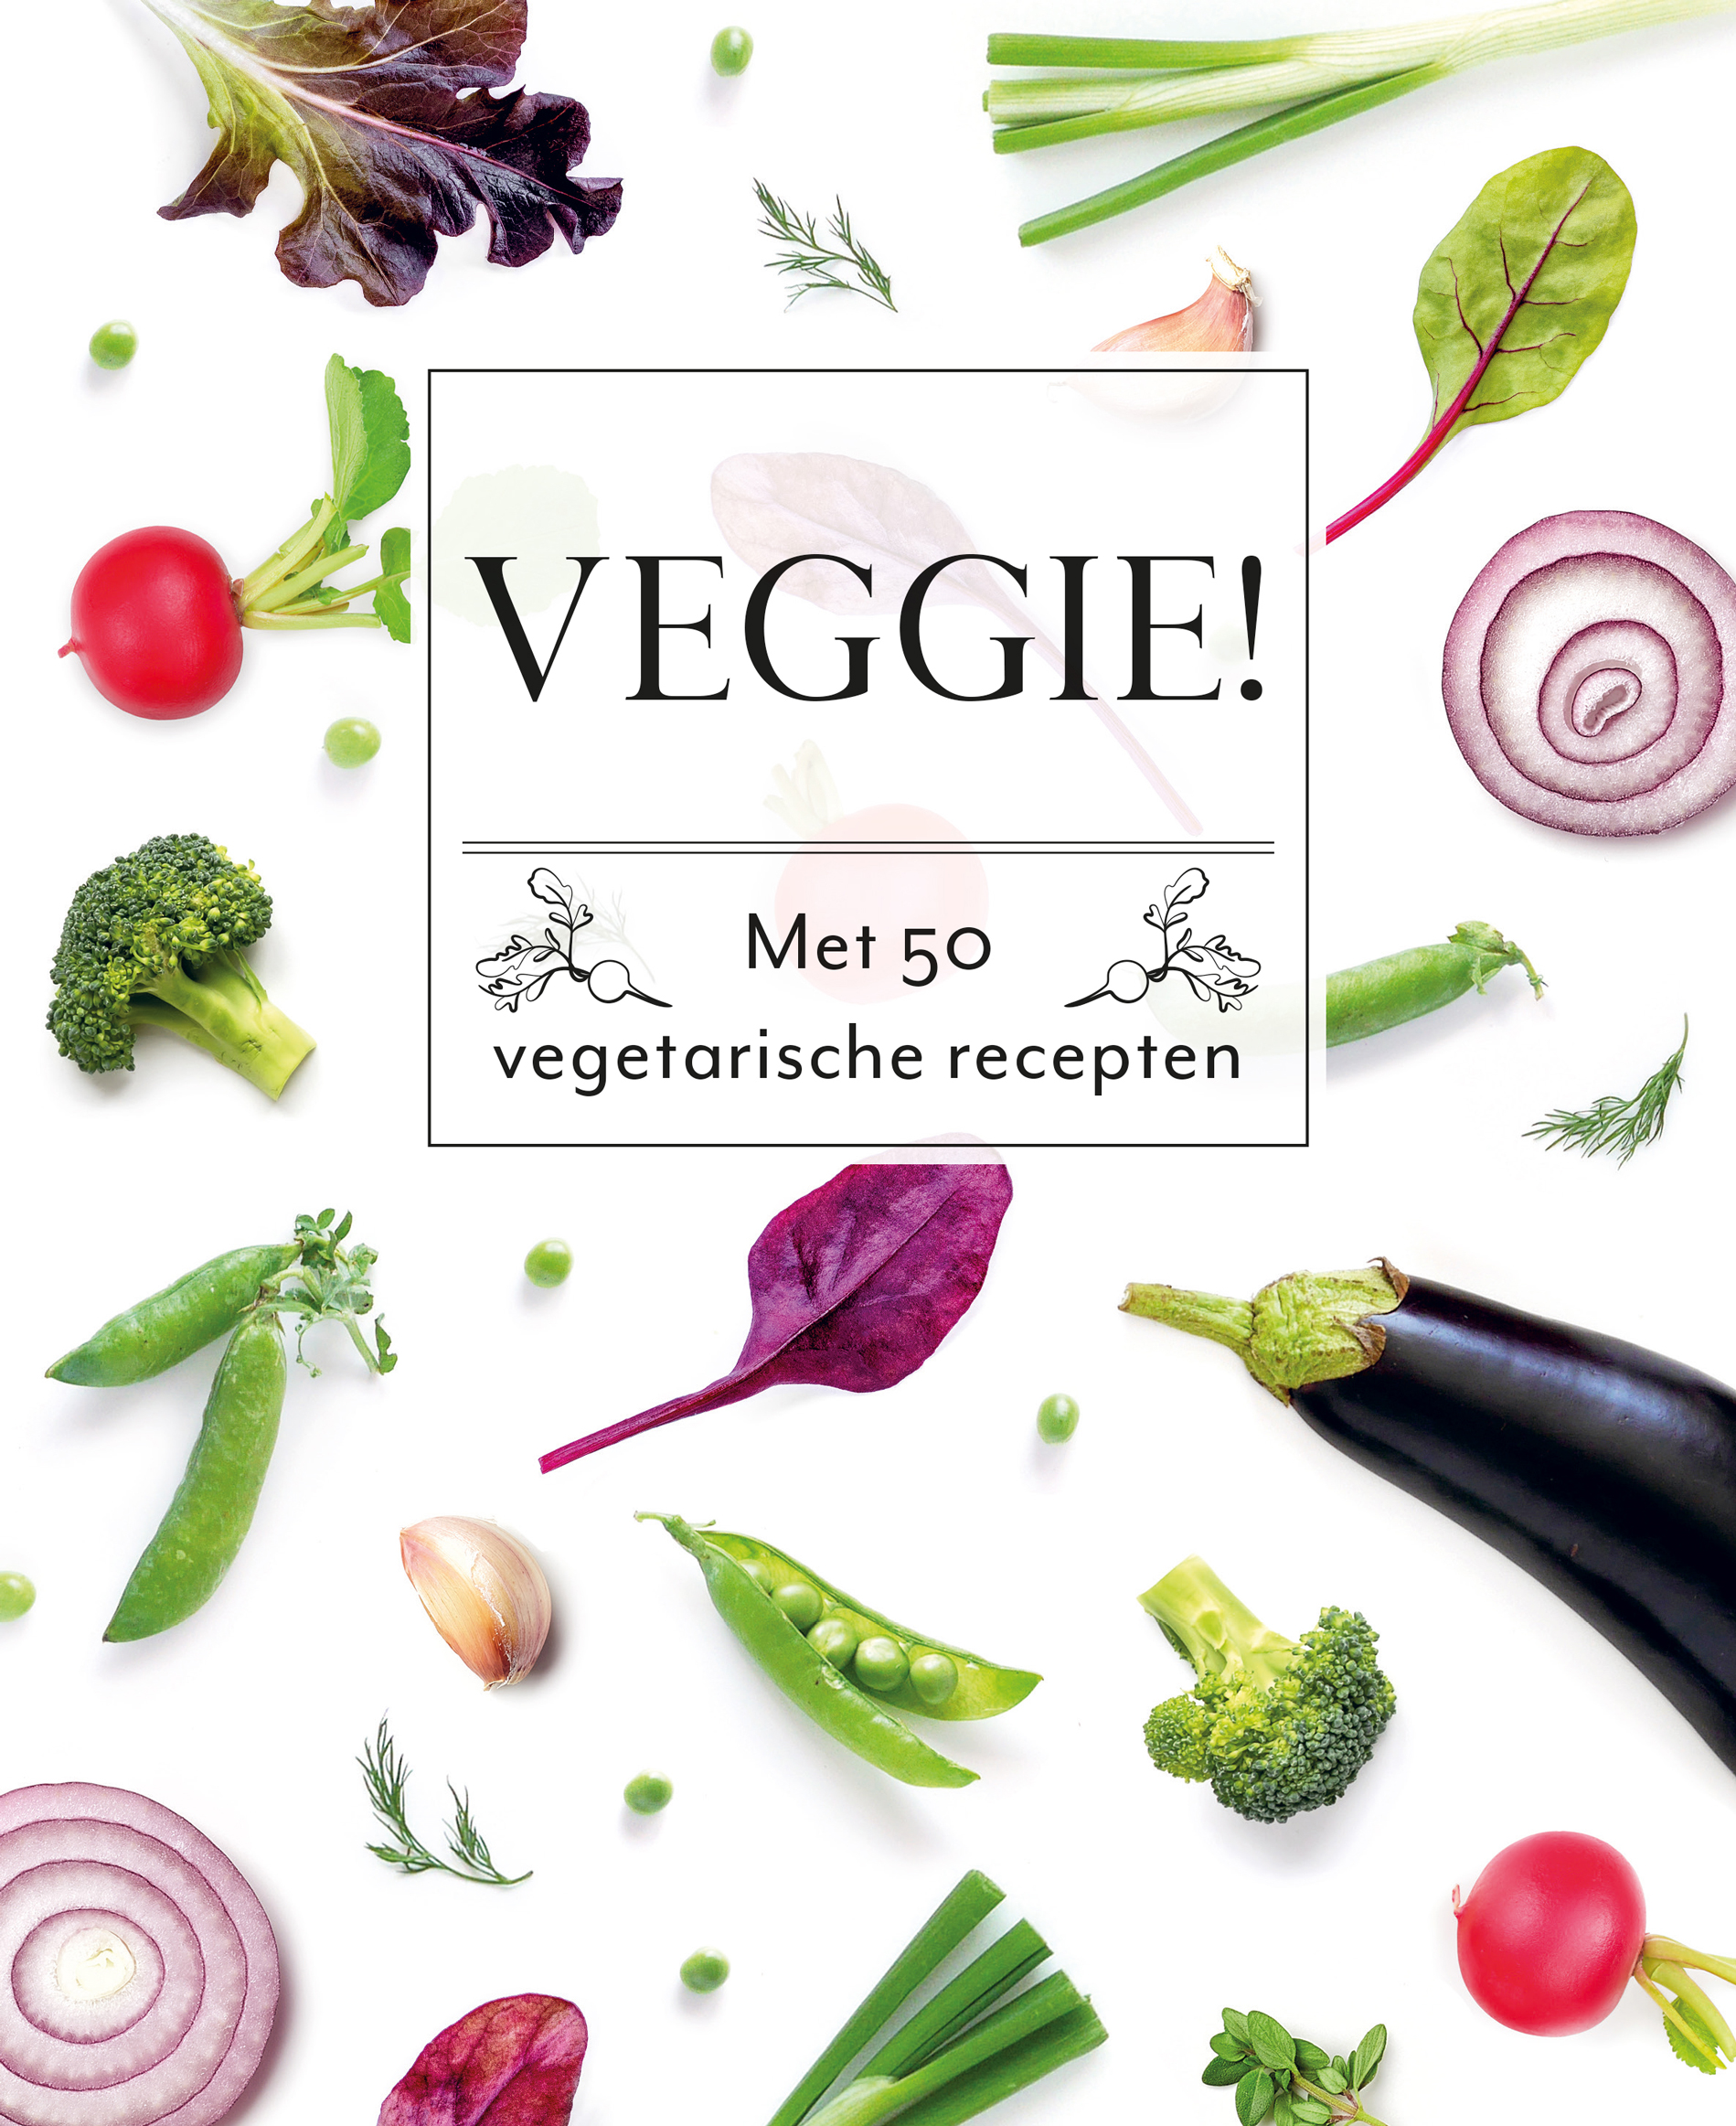 Veggie! - Fresh & Healthy